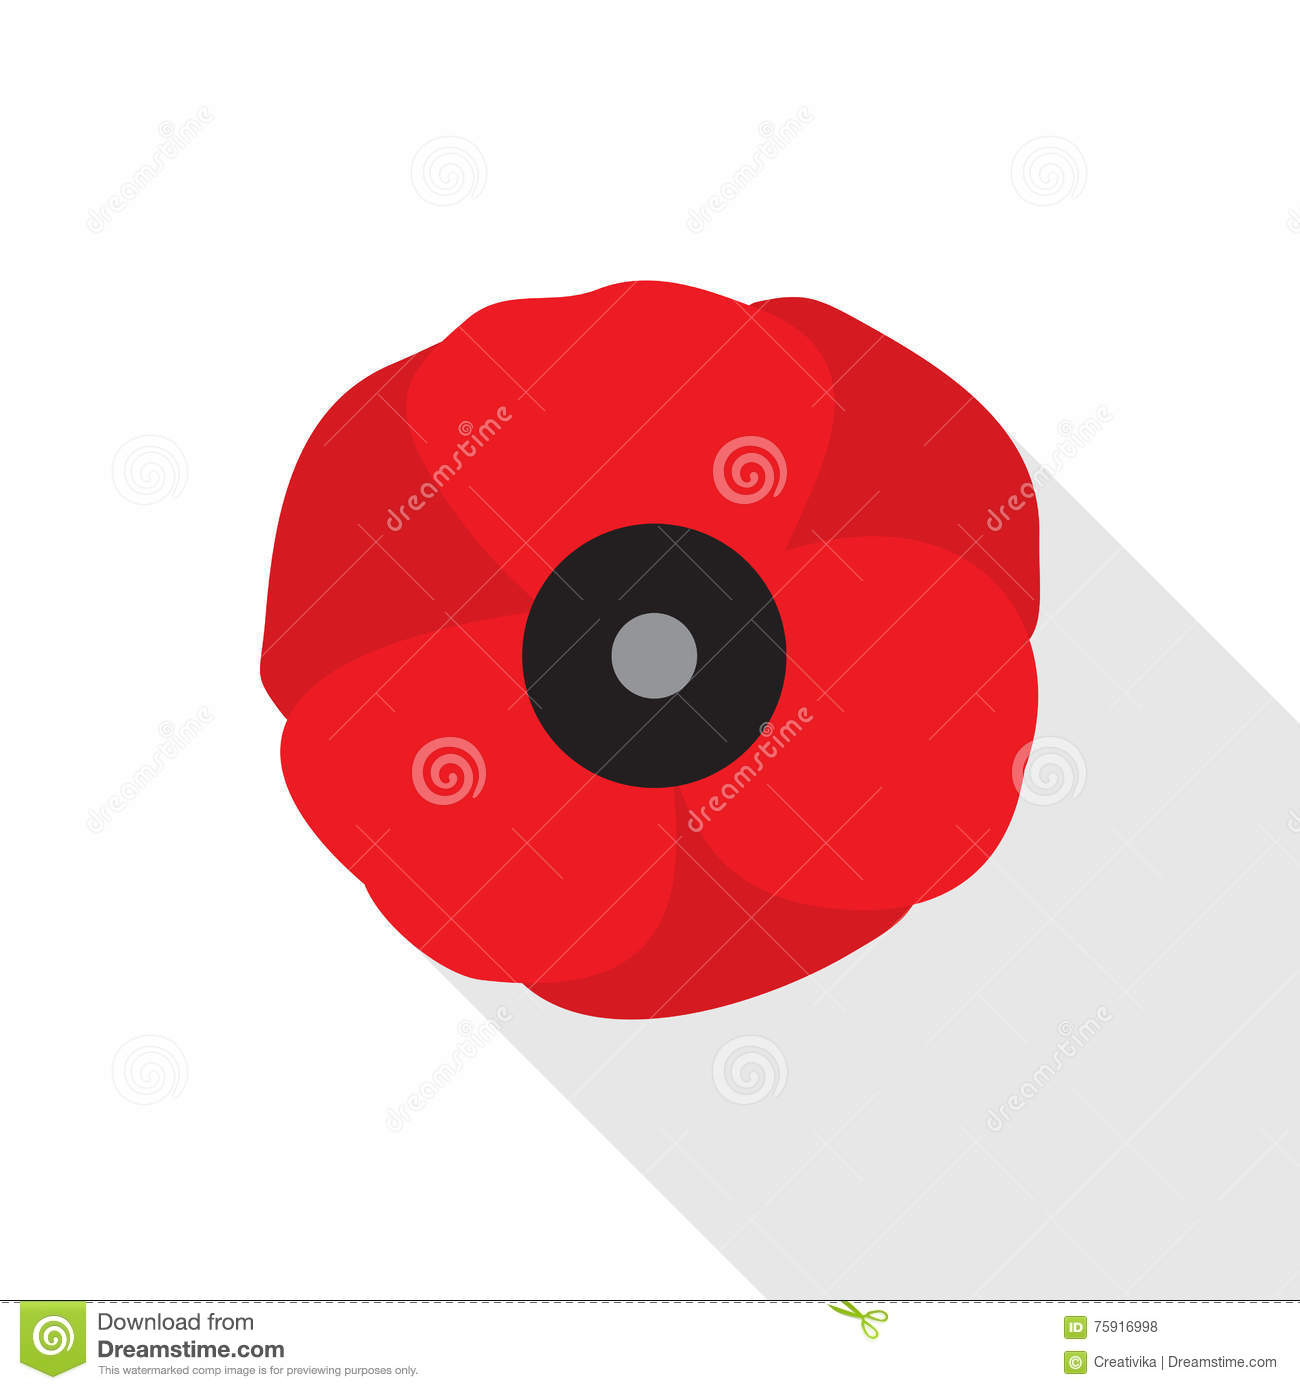 Red Poppy Flower Flat Icon Stock Vector Illustration Of Graphic